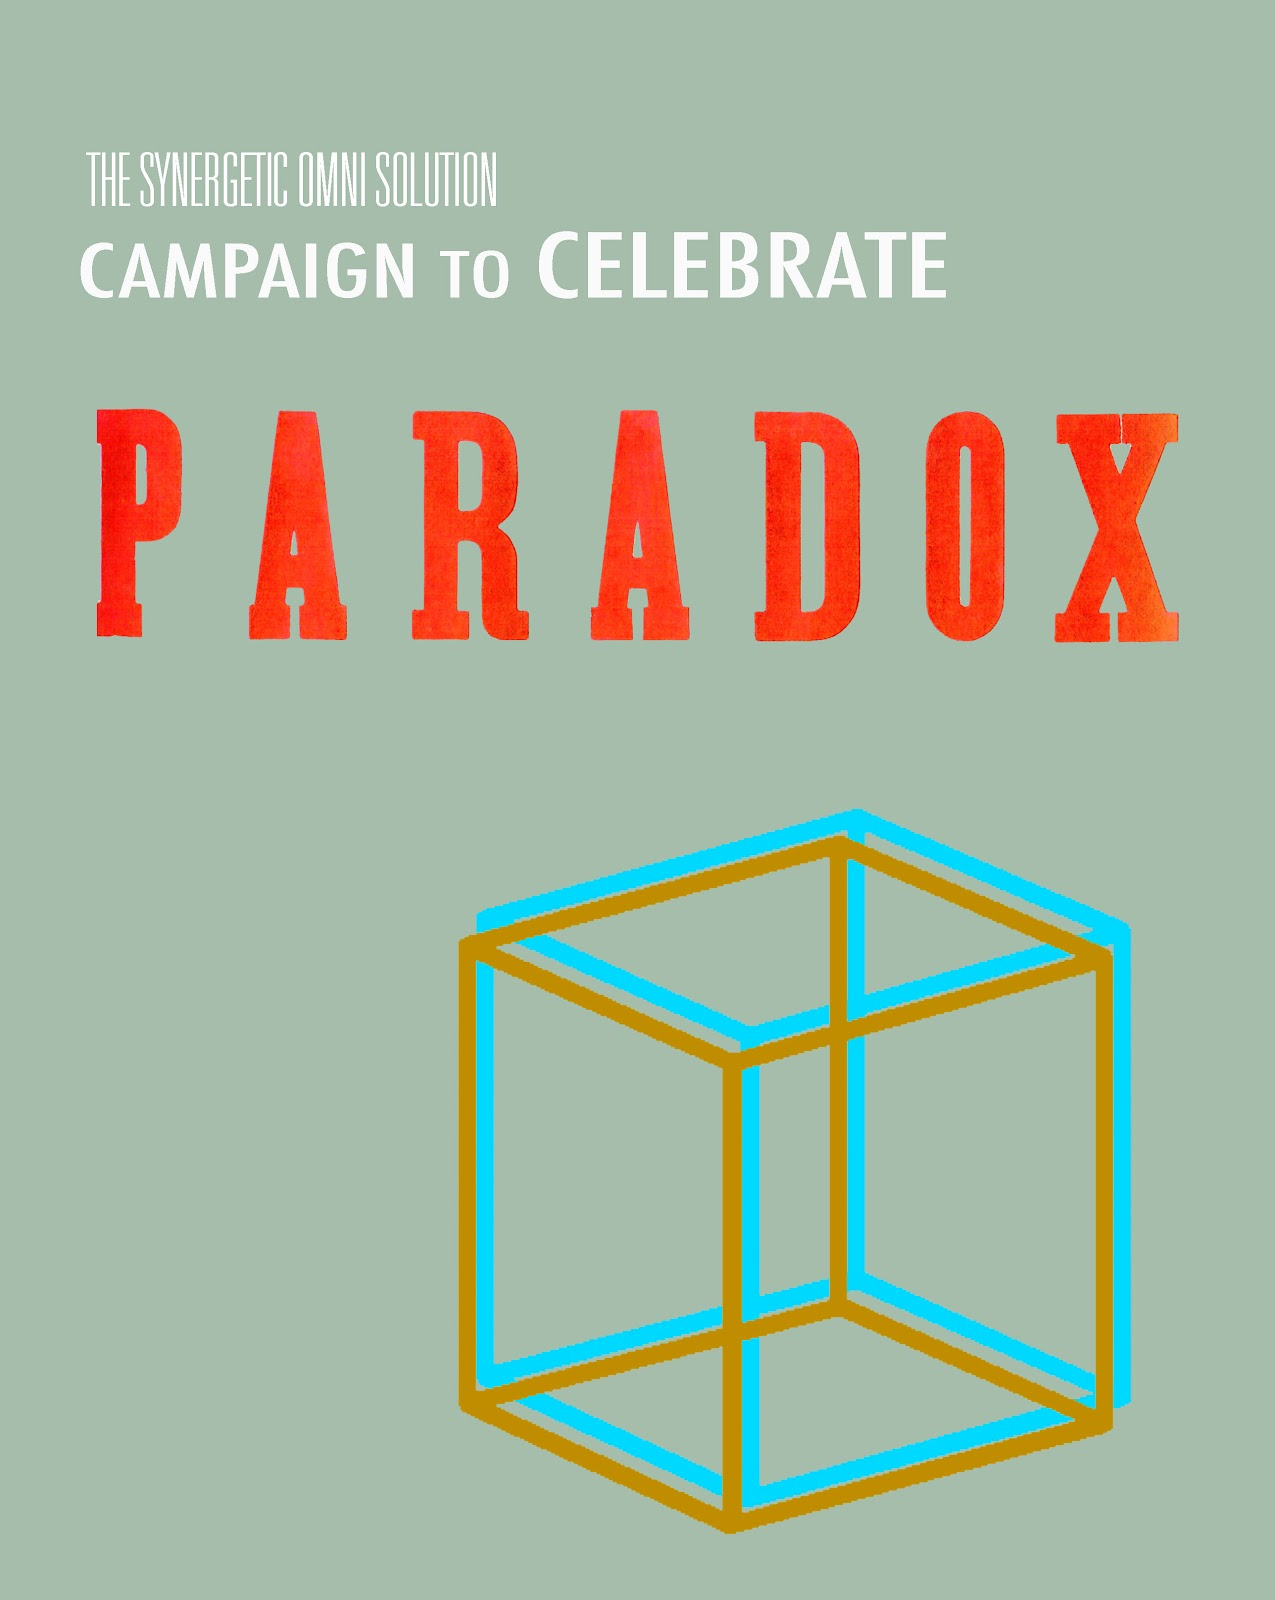 paradox pictures - photo #46